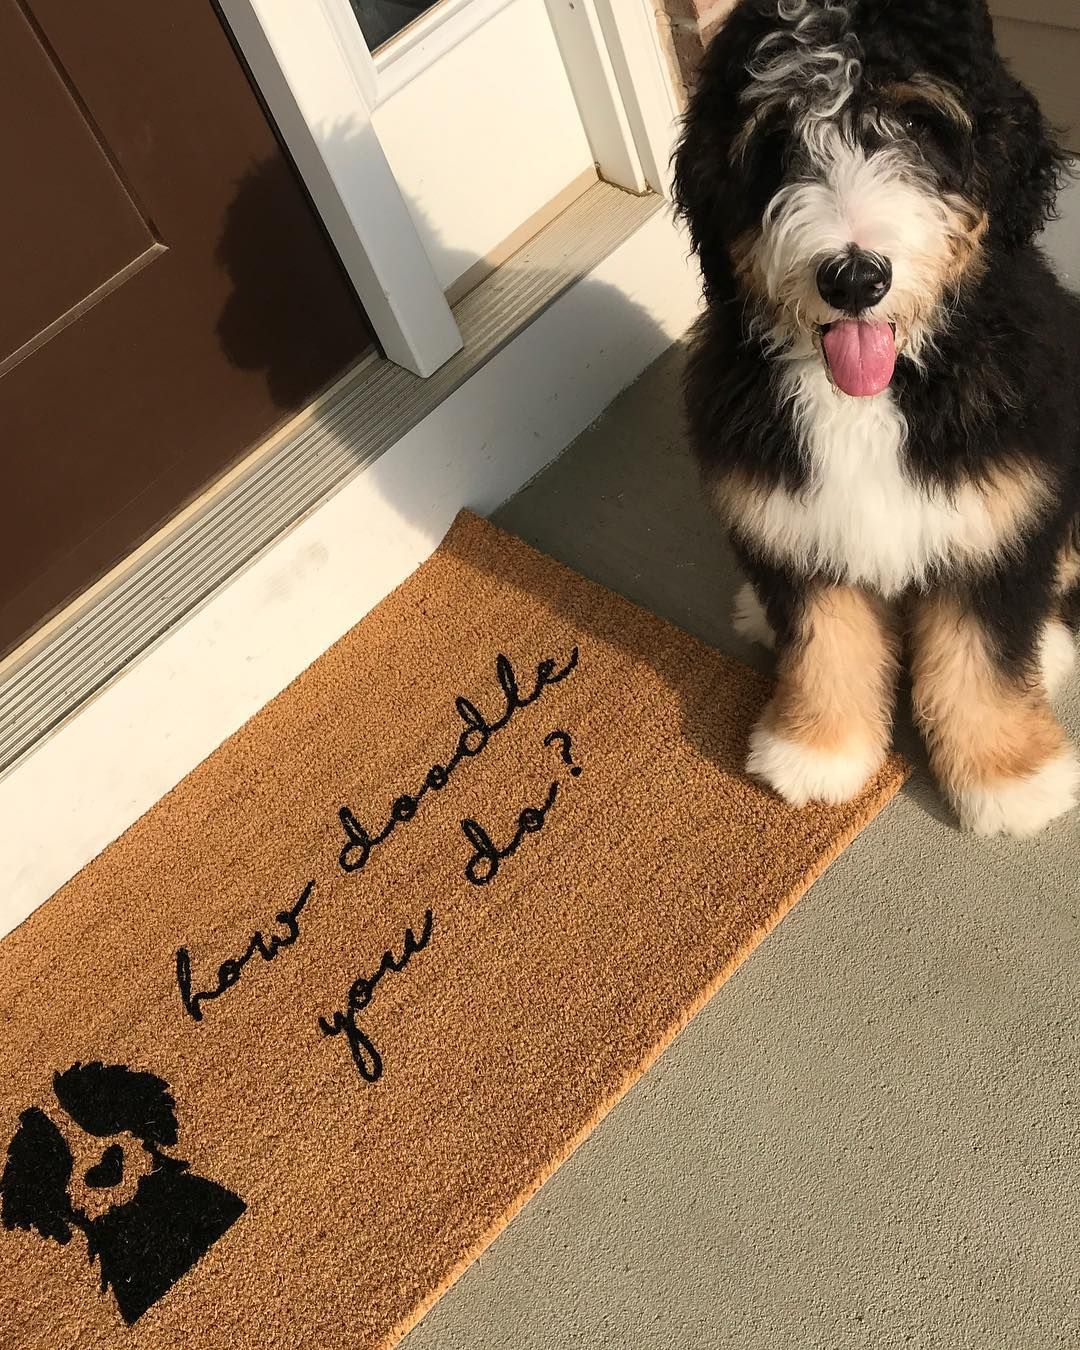 Bernedoodle Bernedoodle Puppy Mountain Dogs Dog Love